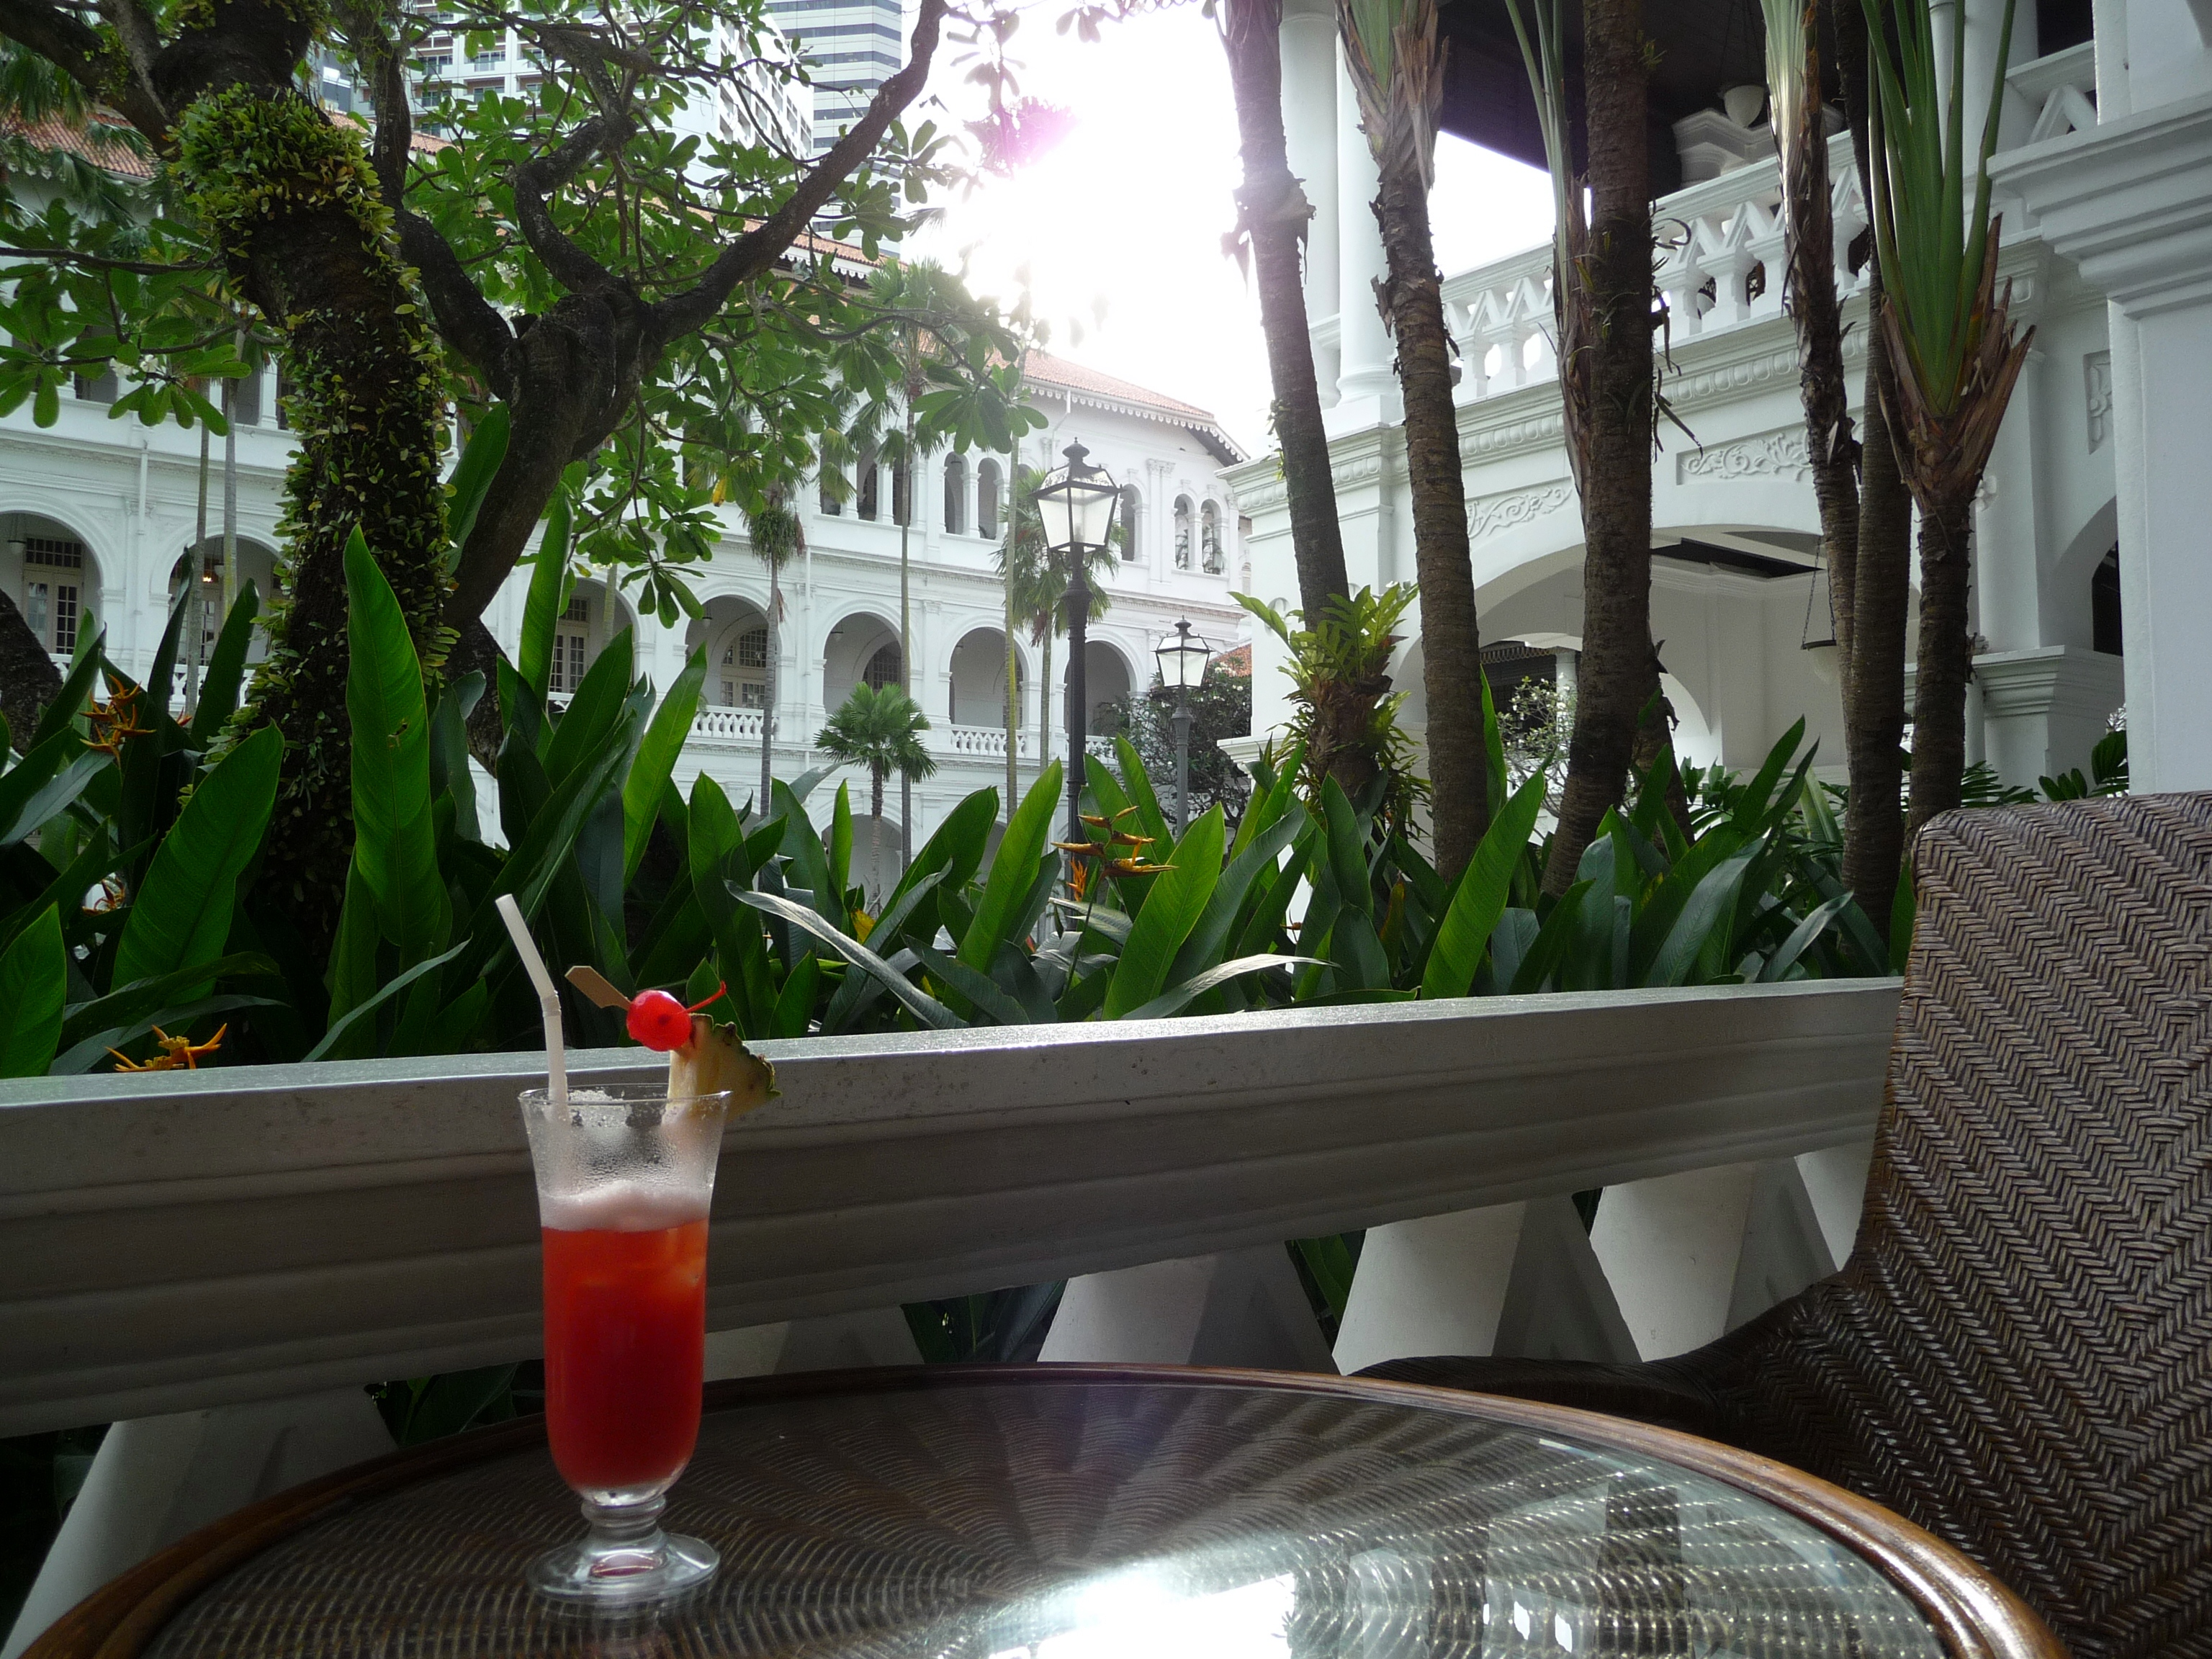 Drinking a Singapore Sling in Singapore